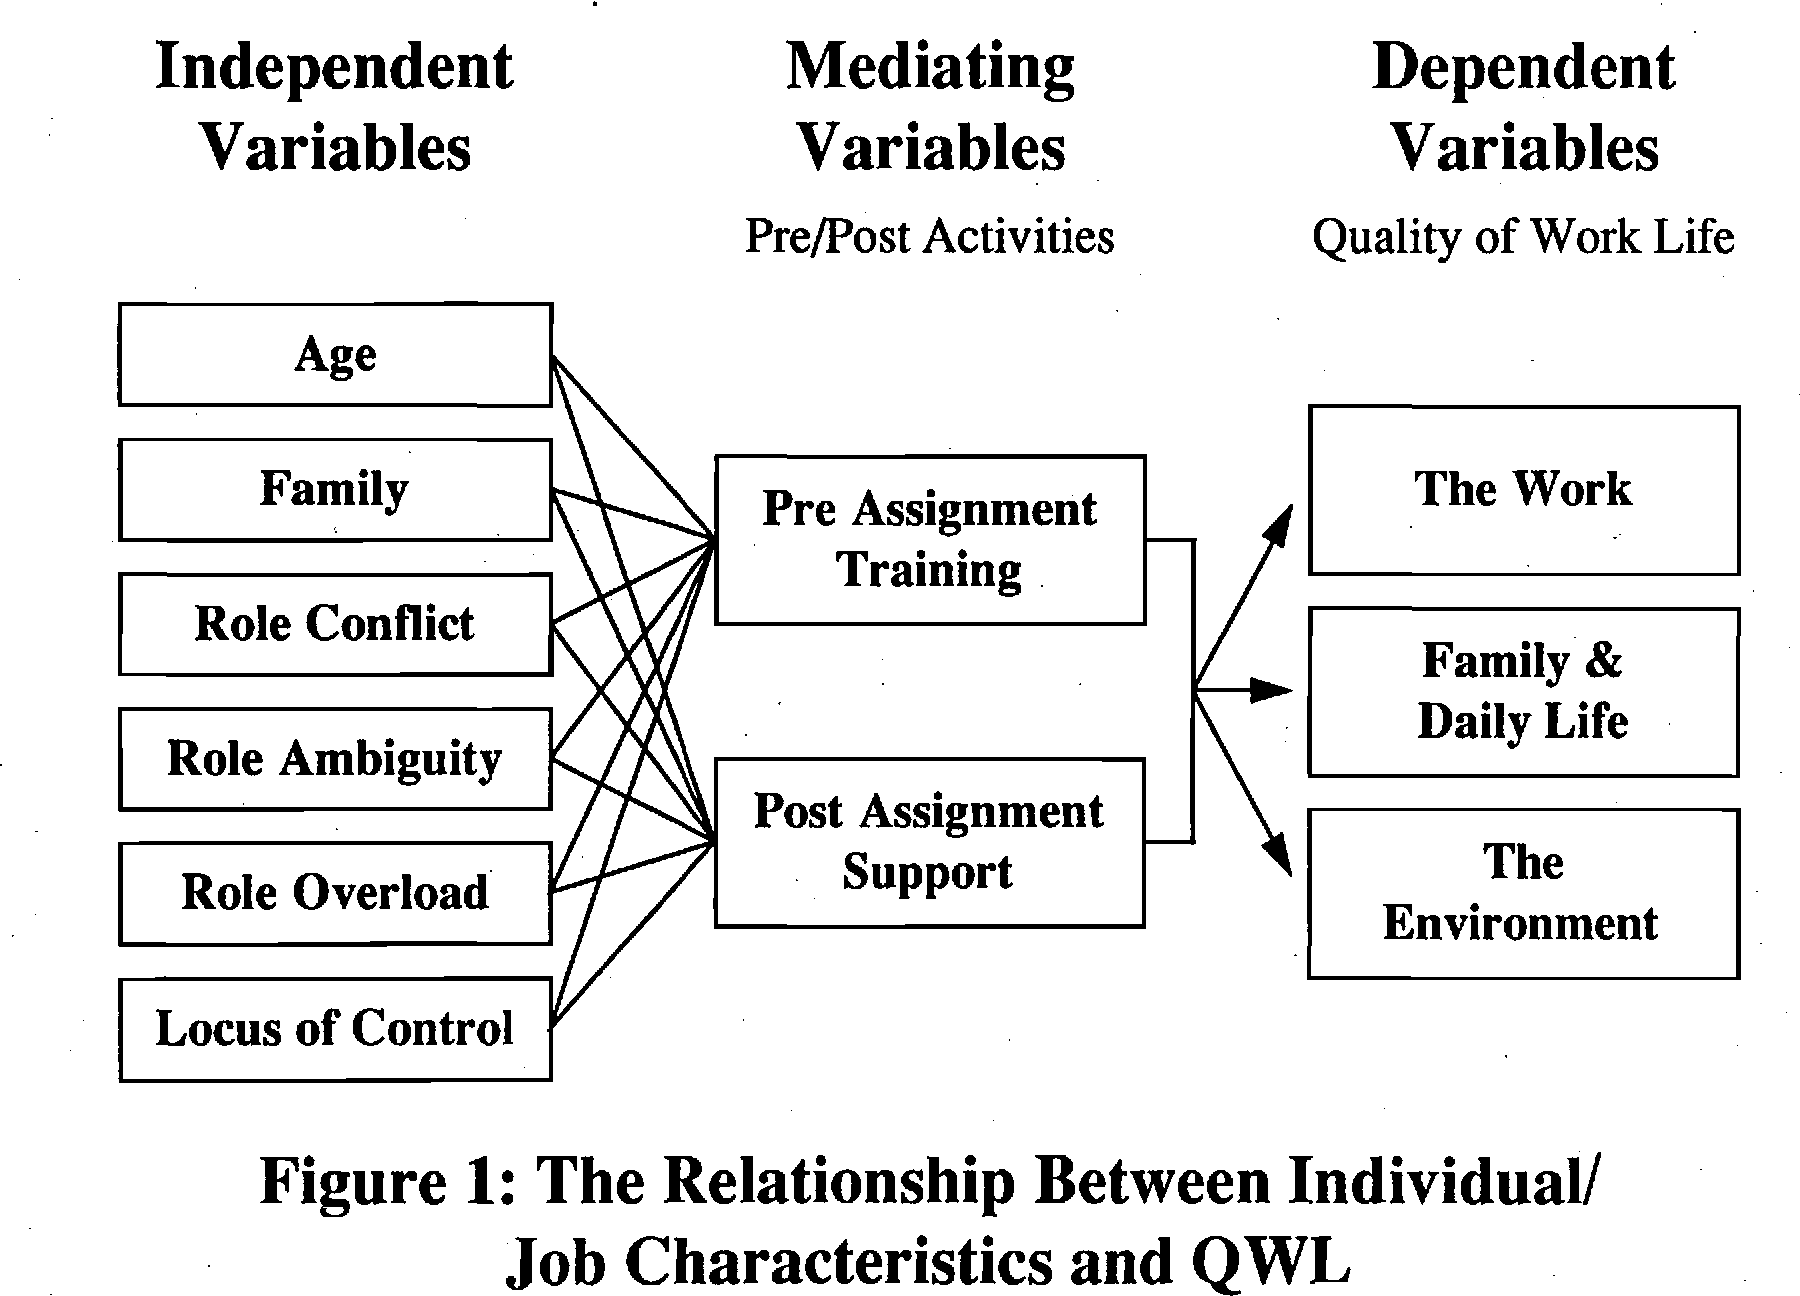 PDF] The Mediating effects of Pre- and Post-Assignment